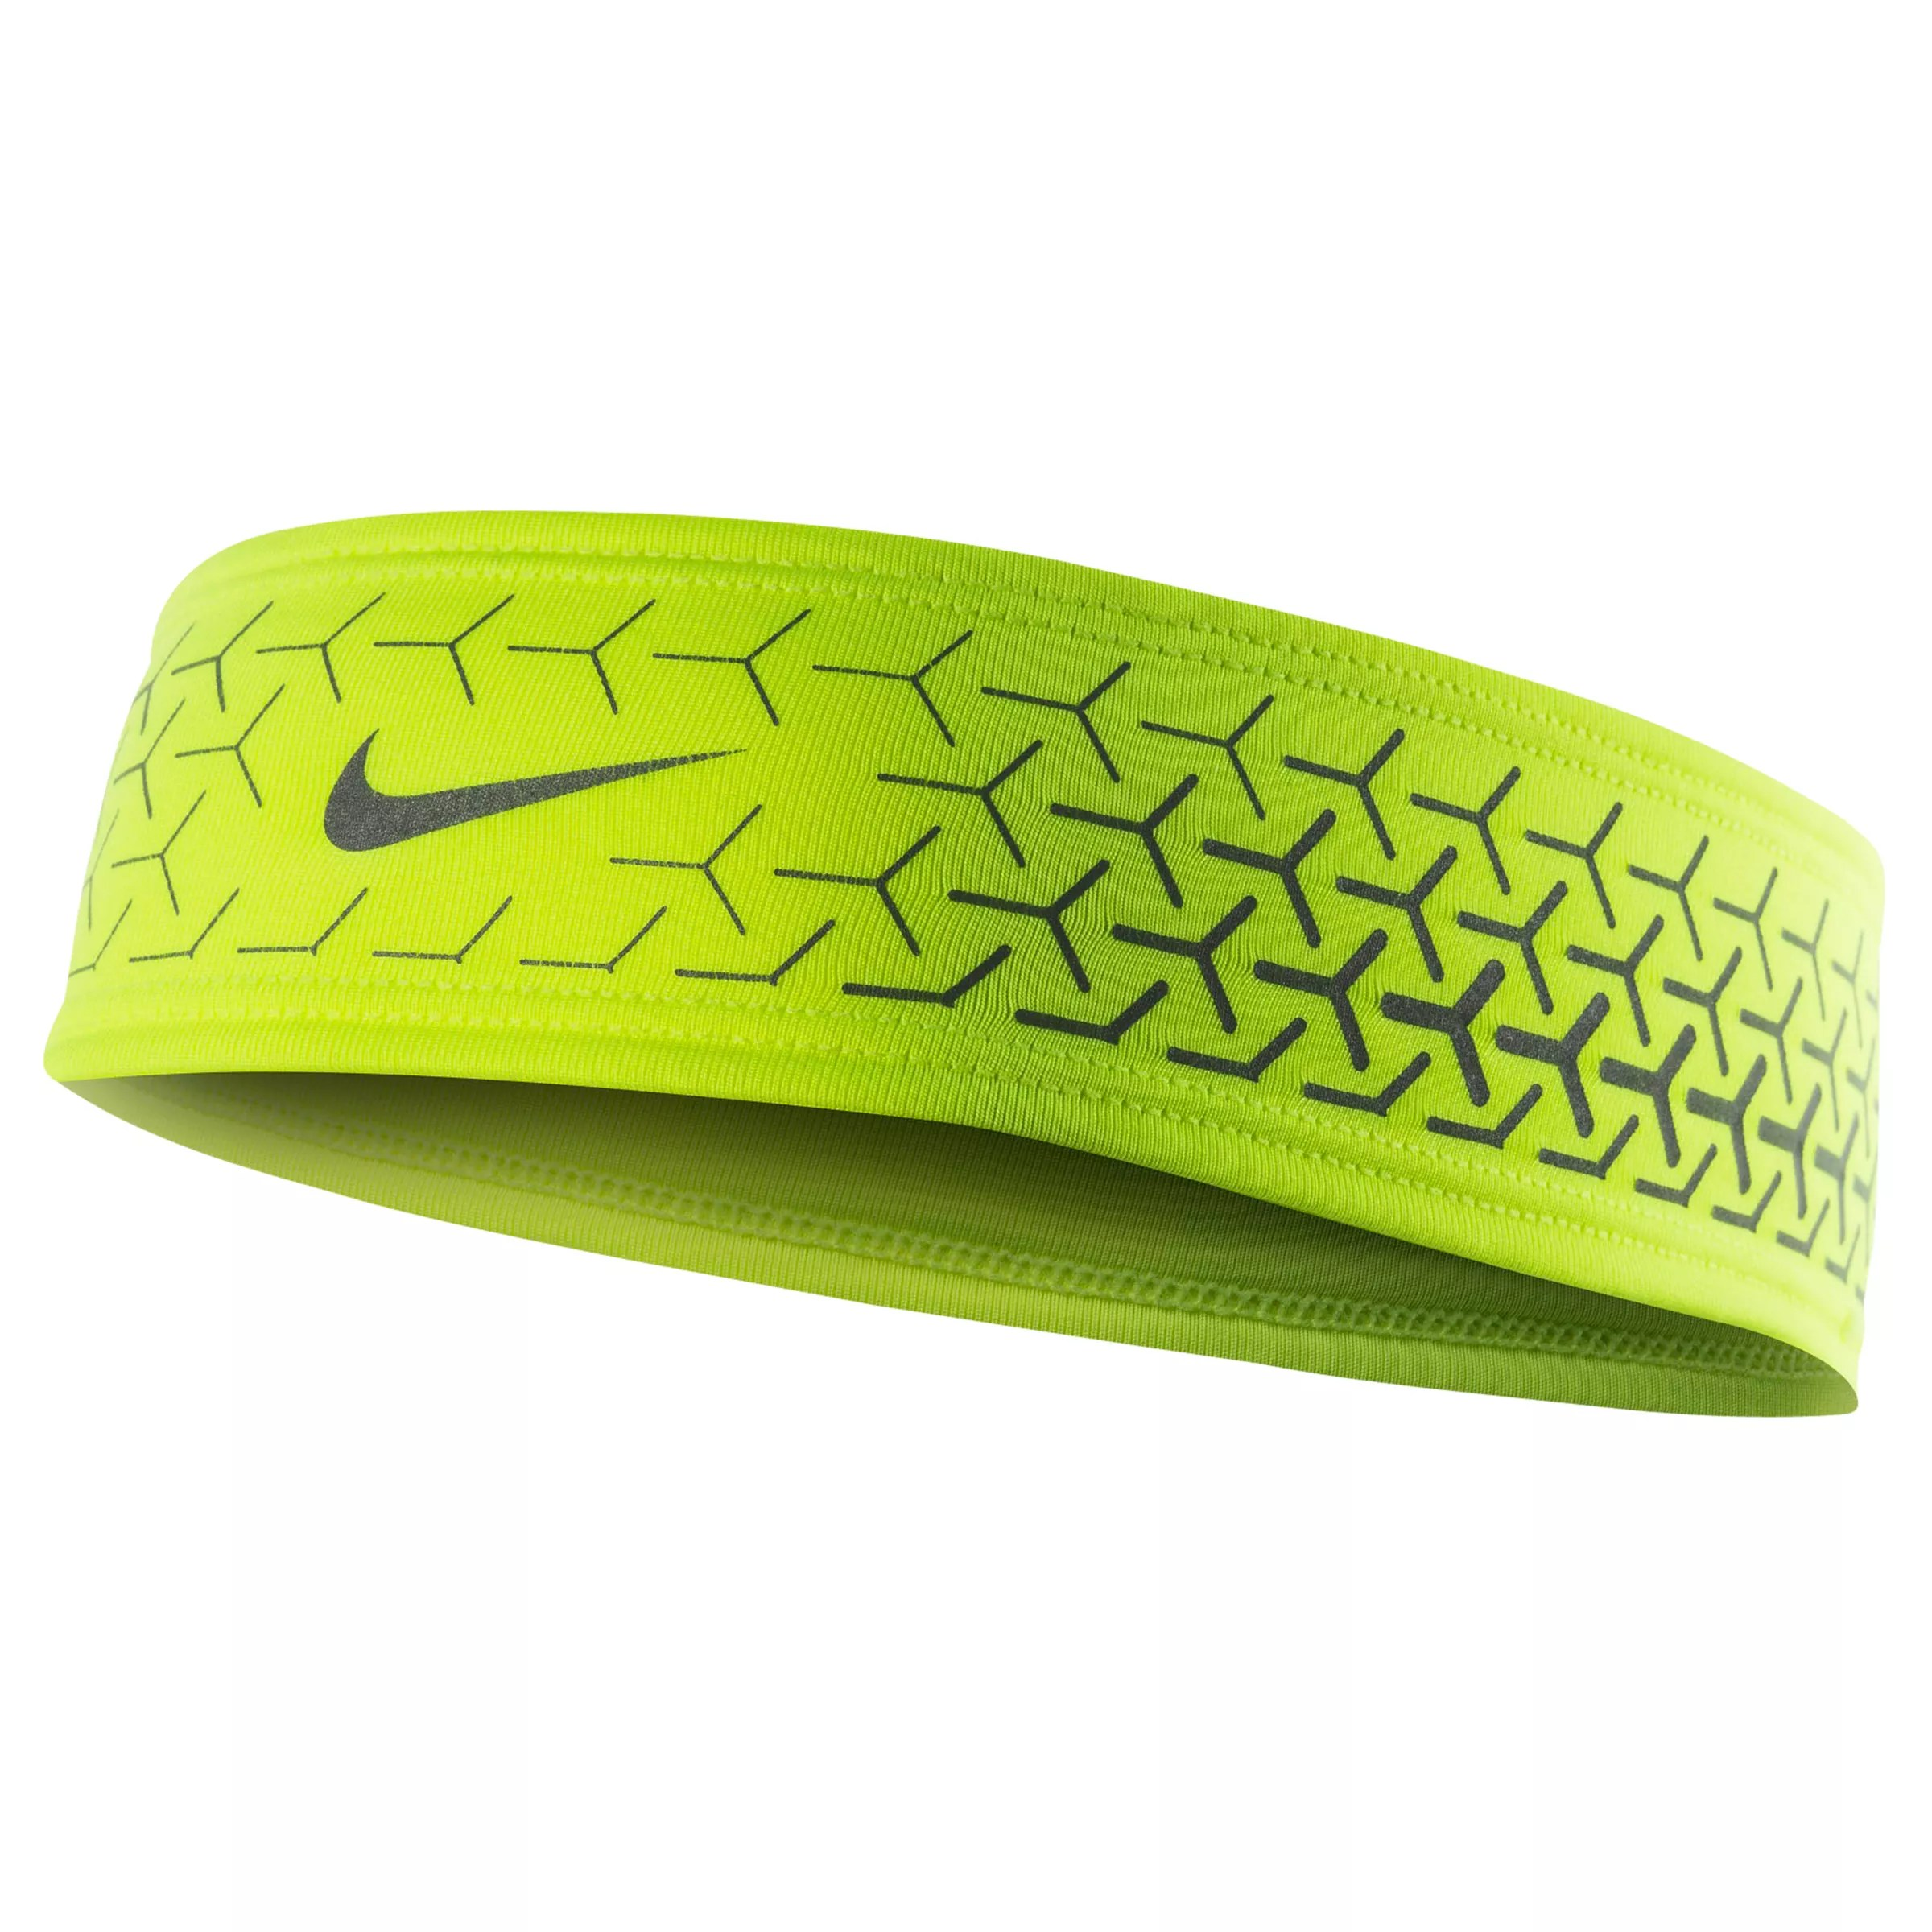 Nike Dri-fit 360 2.0 Headband John Lewis & Partners